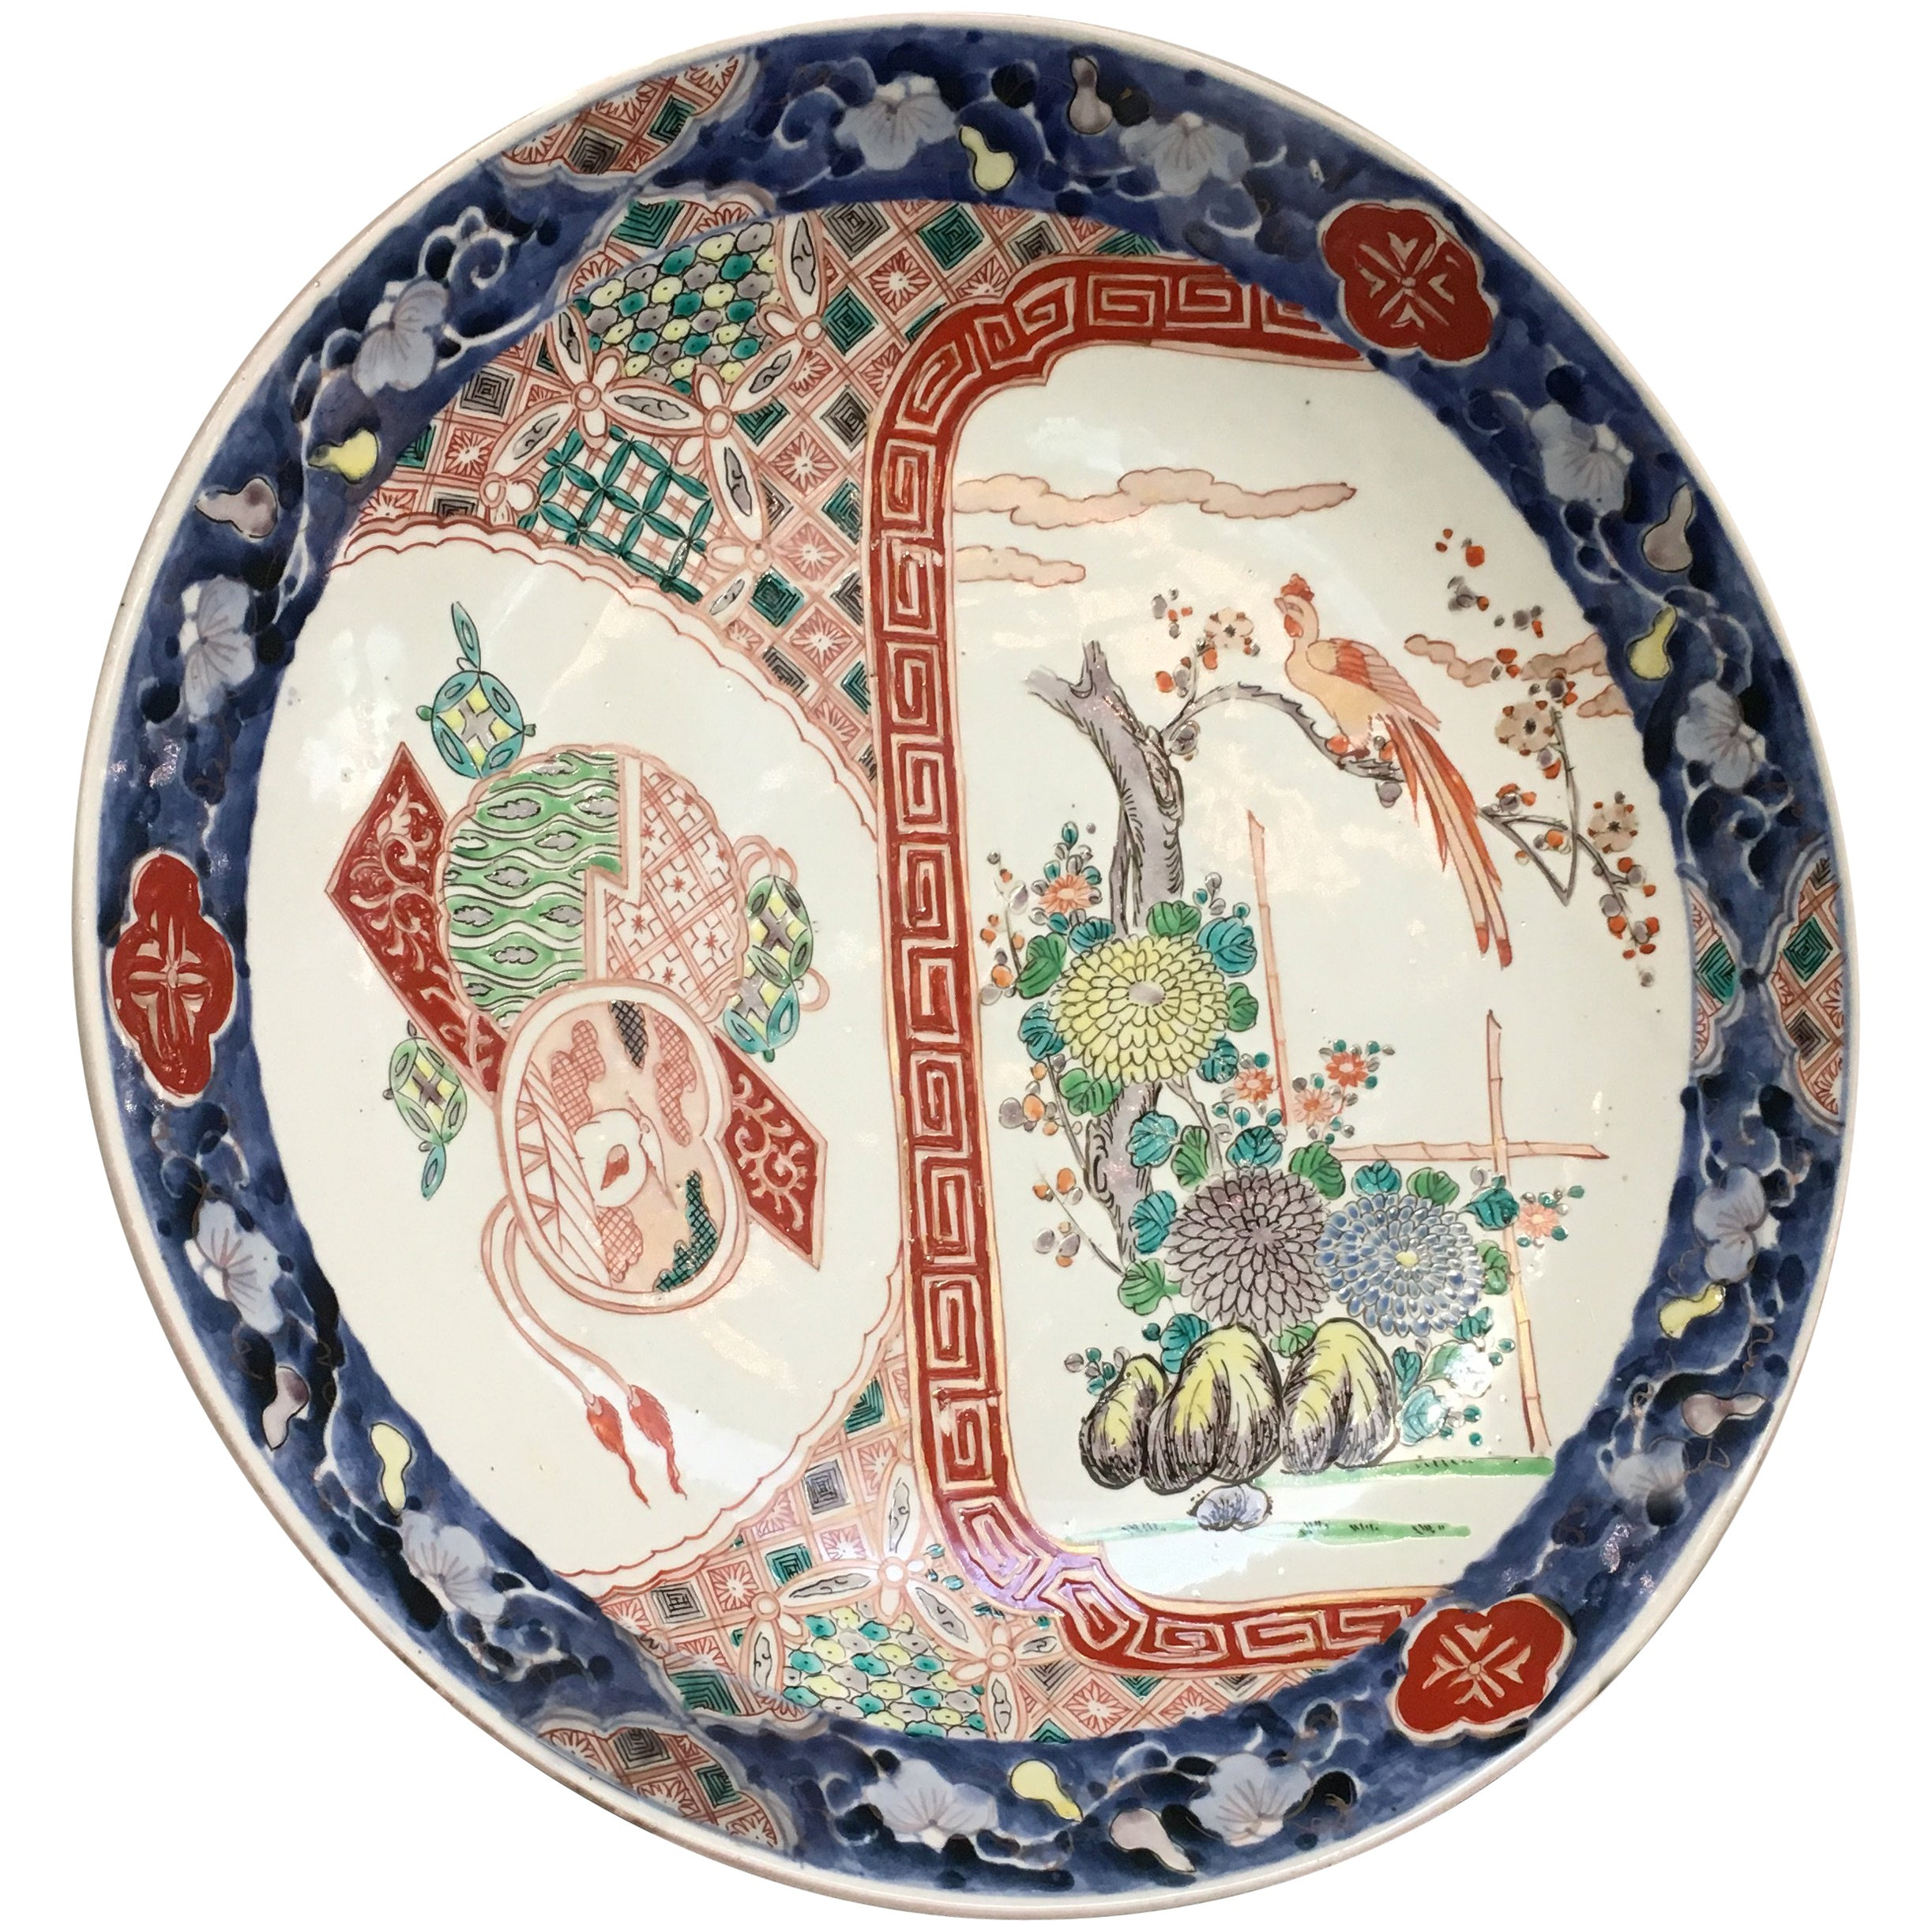 Japanese Imari Charger, Meiji Period, Late 19th Century